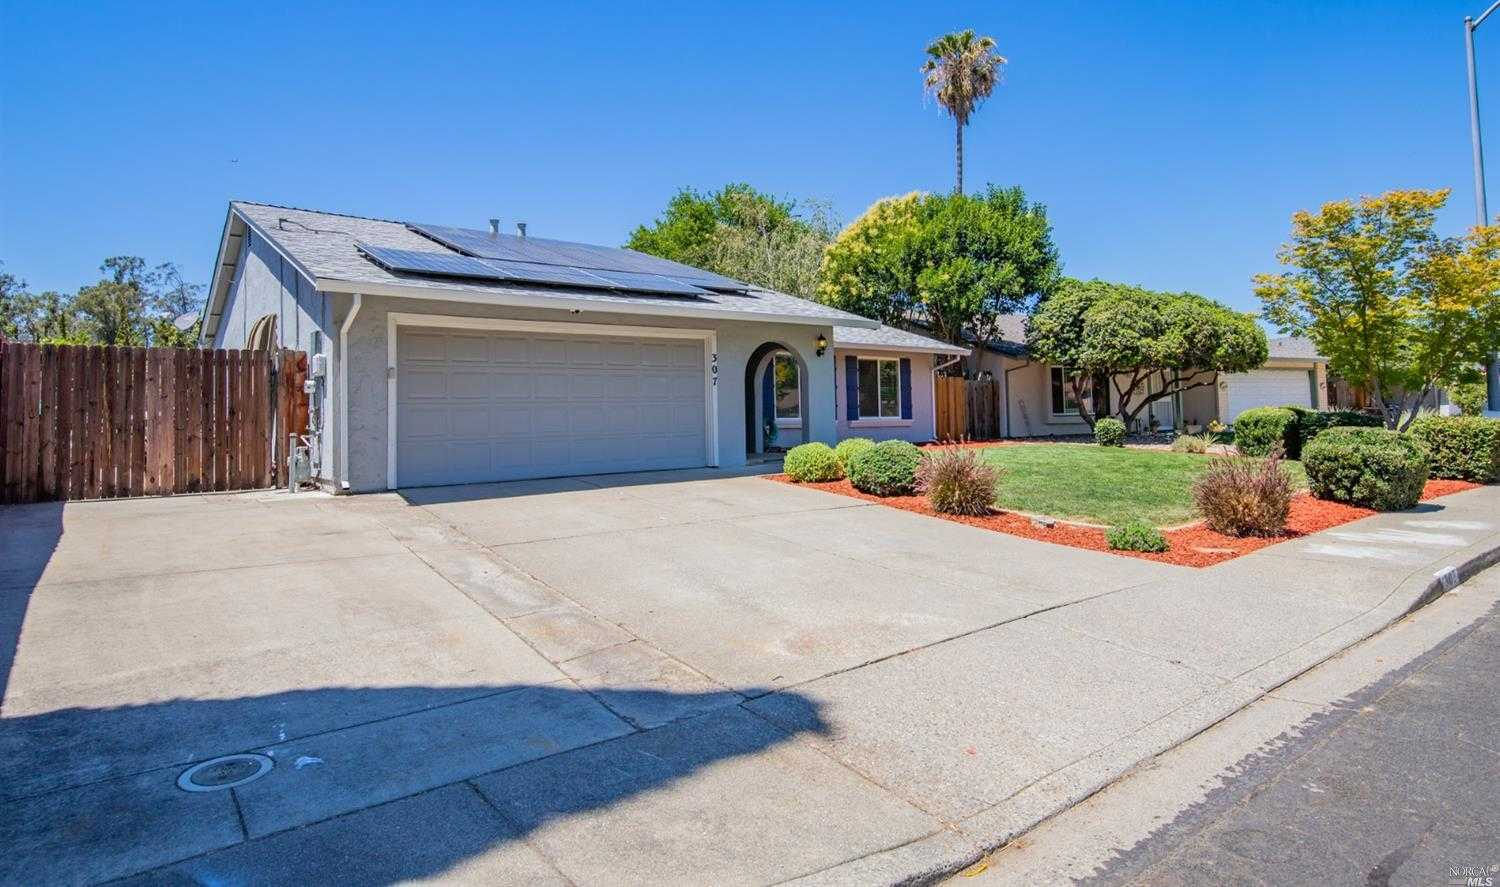 $442,500 - 3Br/2Ba -  for Sale in Vacaville